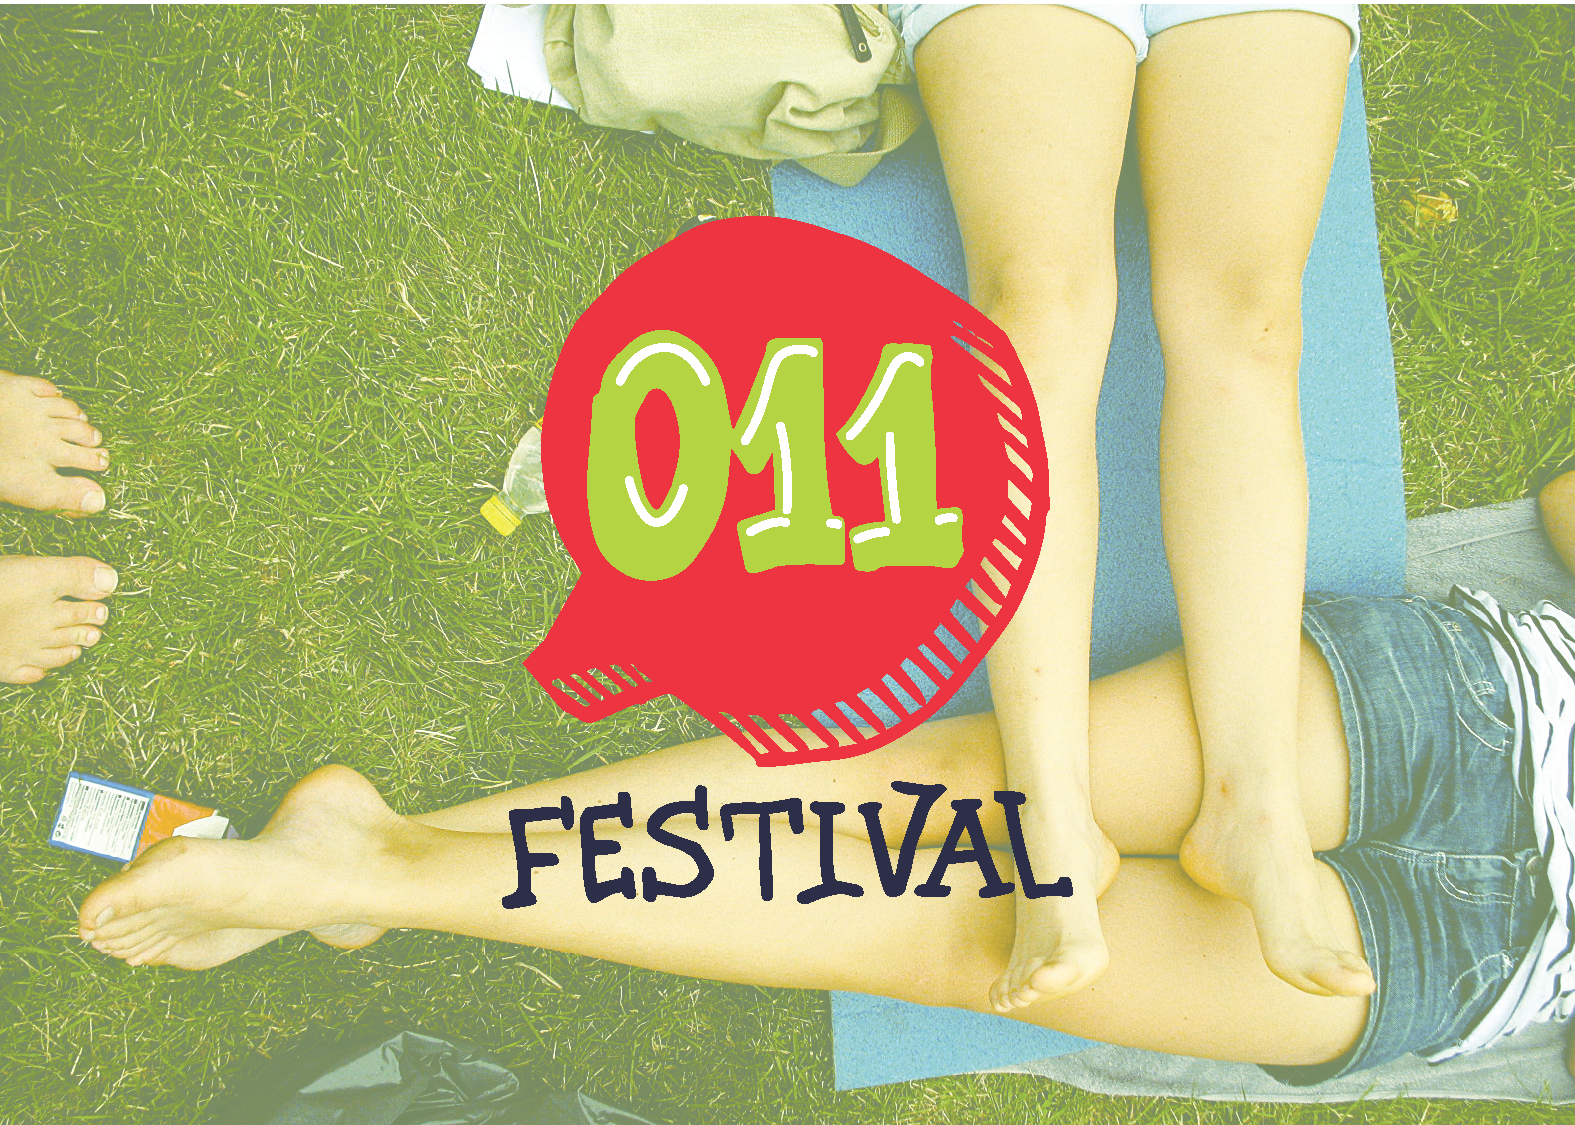 festival011_logo_05_variacoes_Page_19